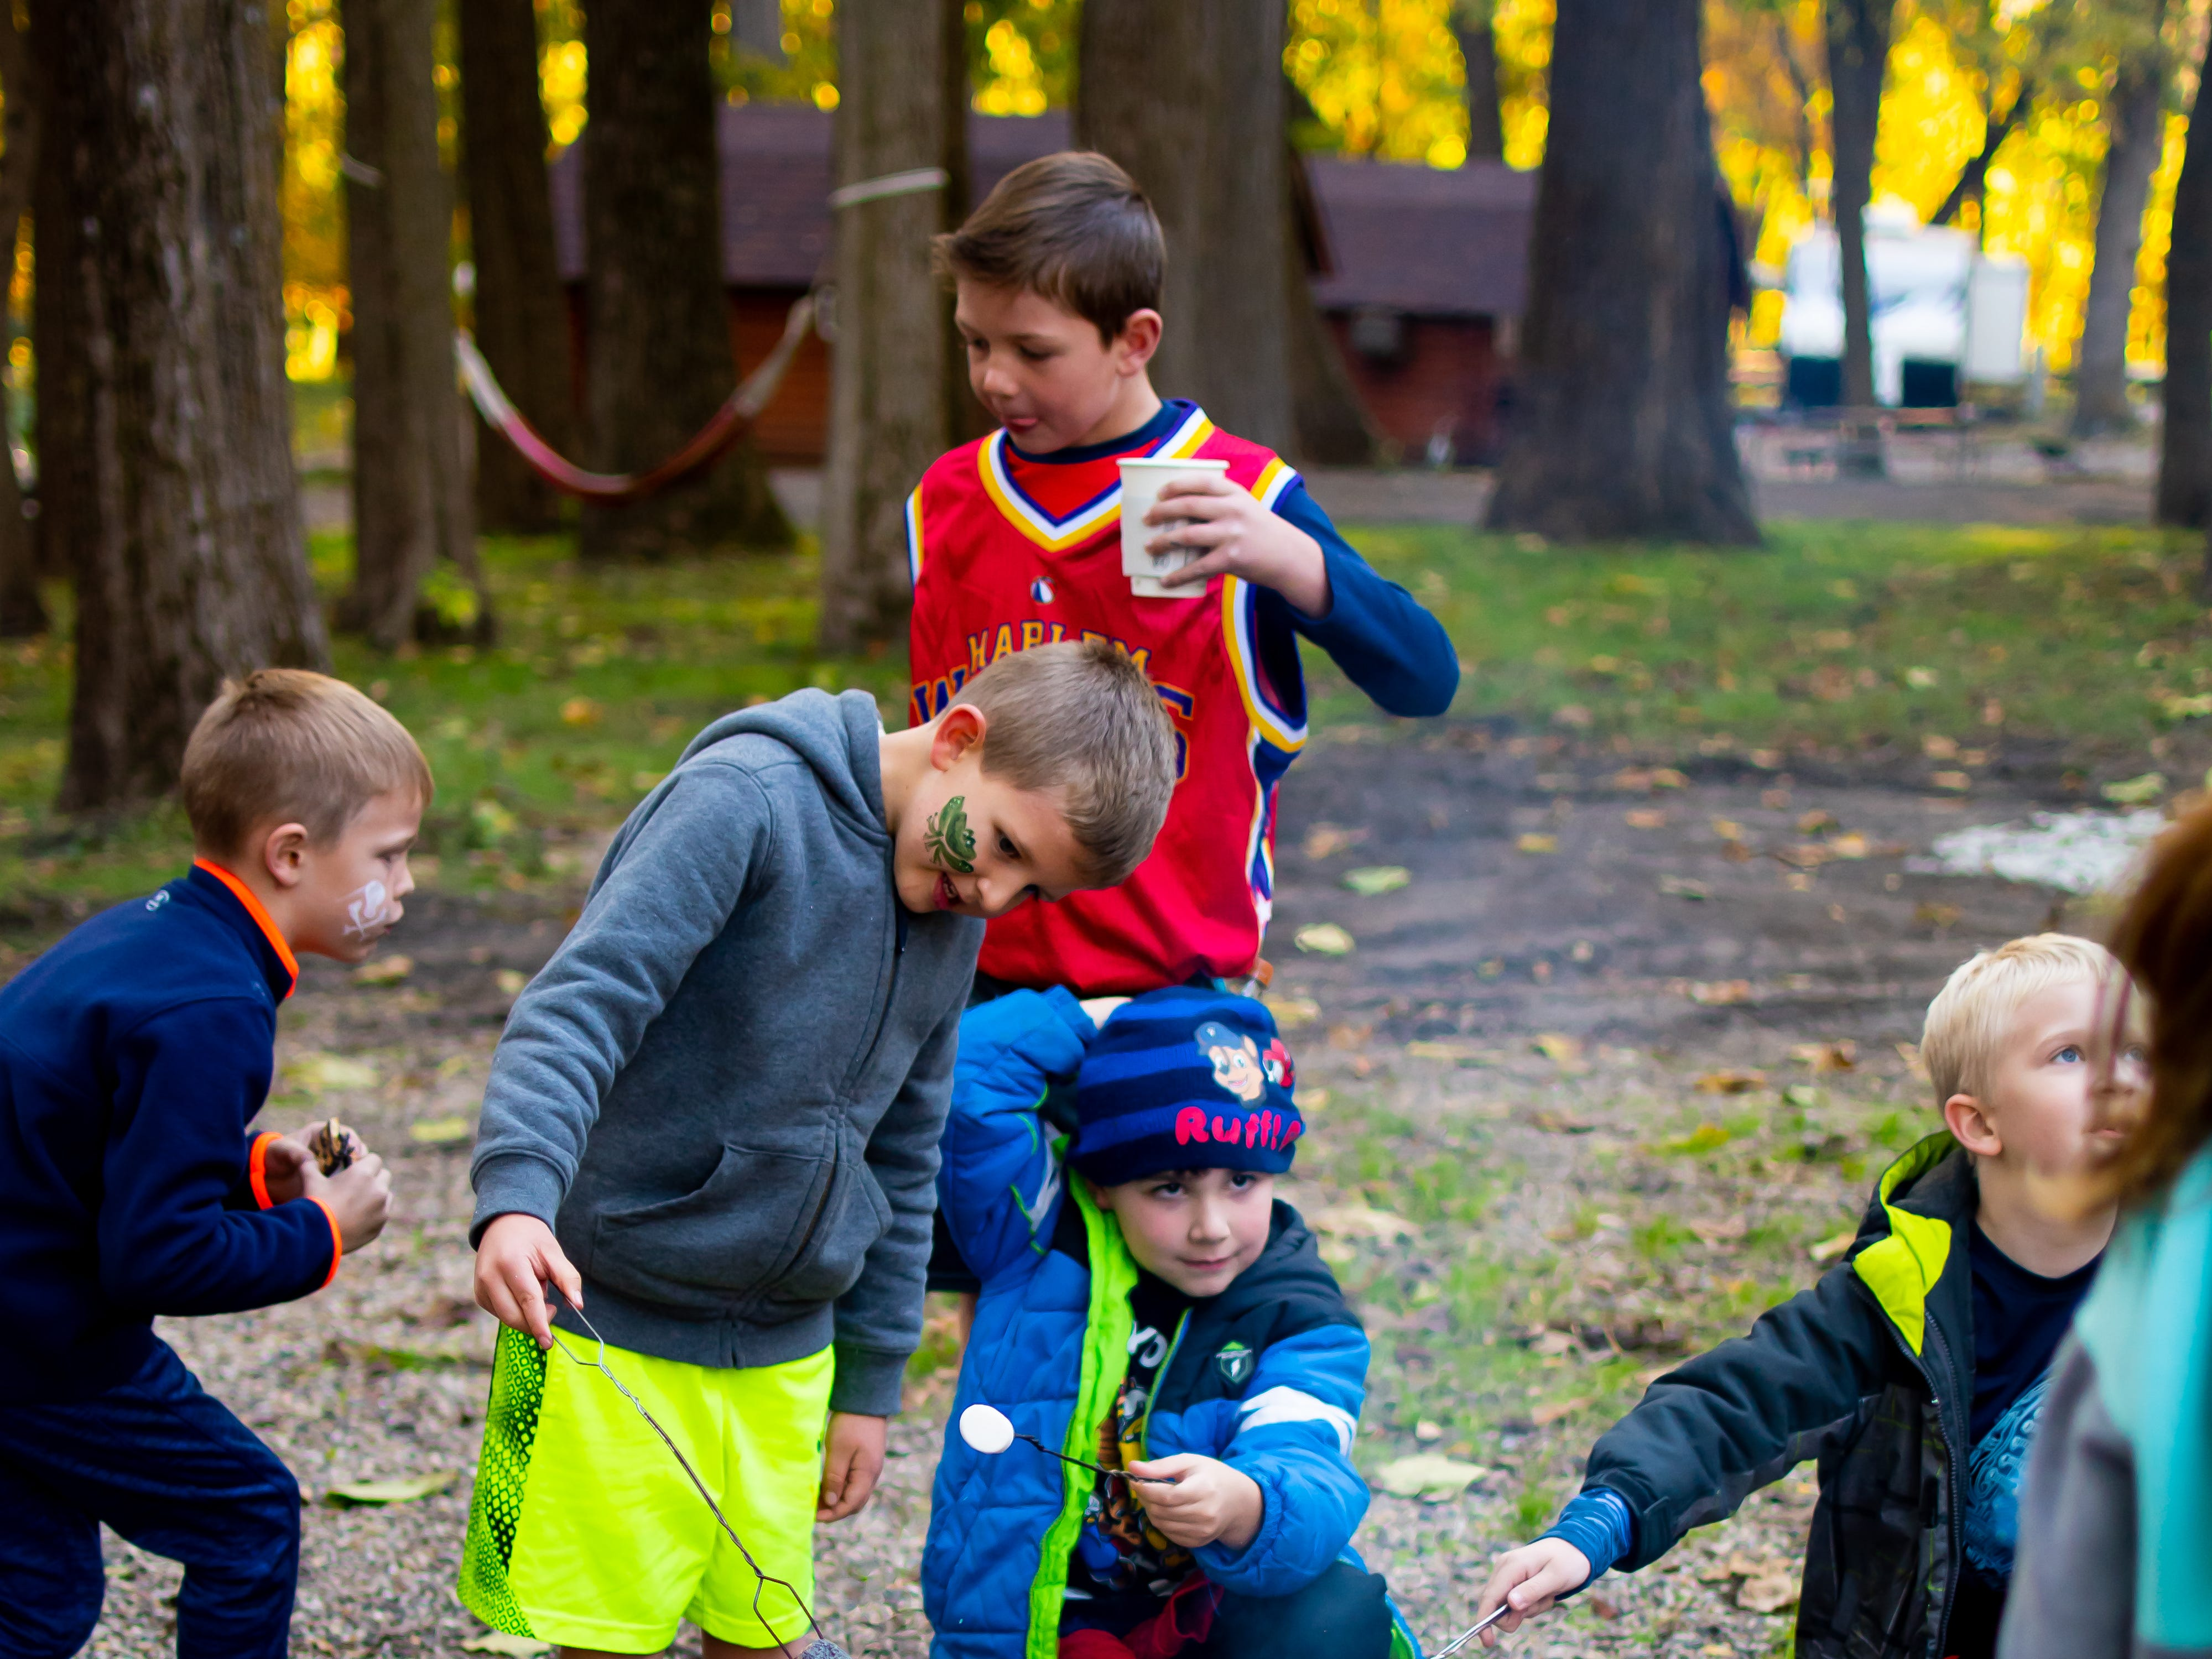 Kids enjoy making s'mores on Tuesday, Oct. 16, 2018 for the Waukee Area Chamber of Commerce fall after hours party at Timberline Campground in Waukee.